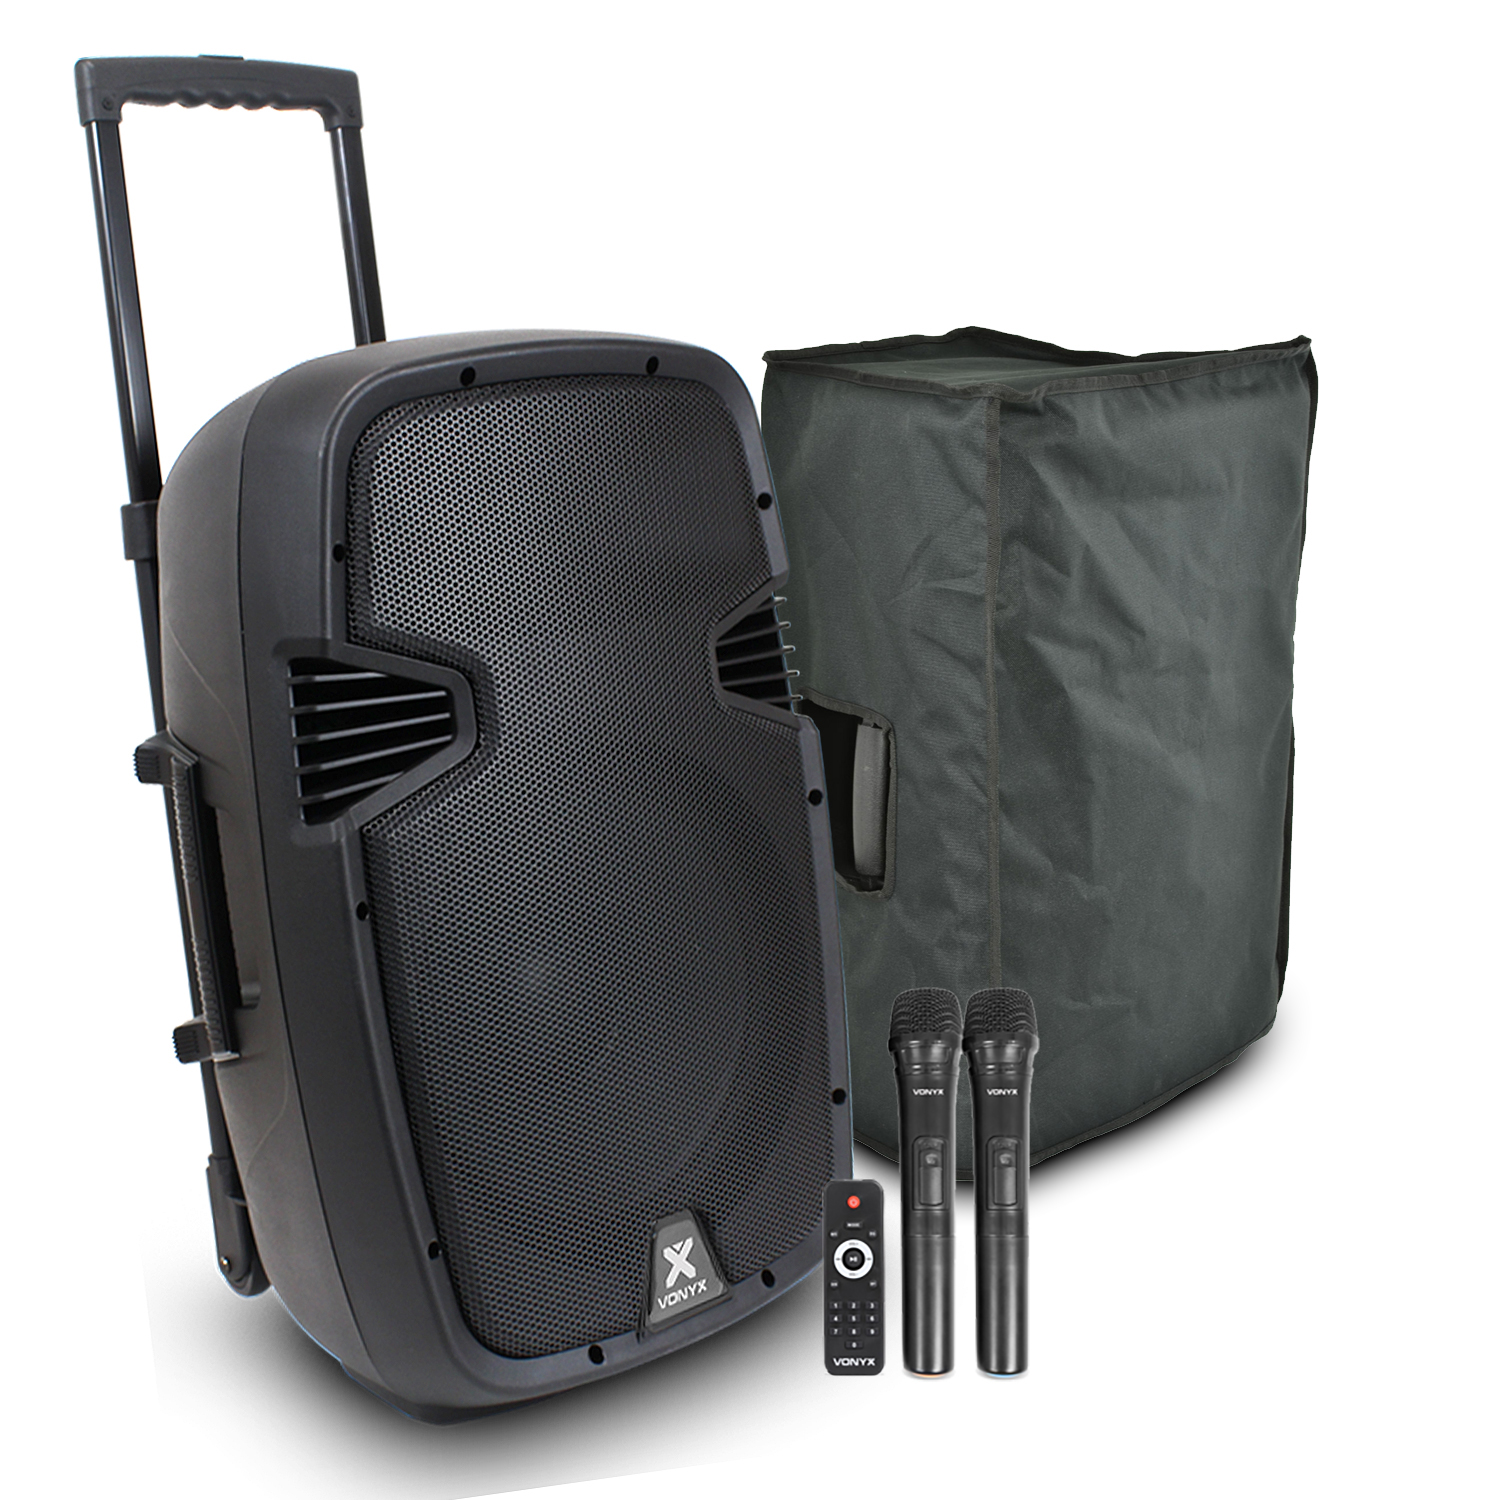 Vonyx SPJ-PA912 Portable PA System with Microphones & Speaker Cover